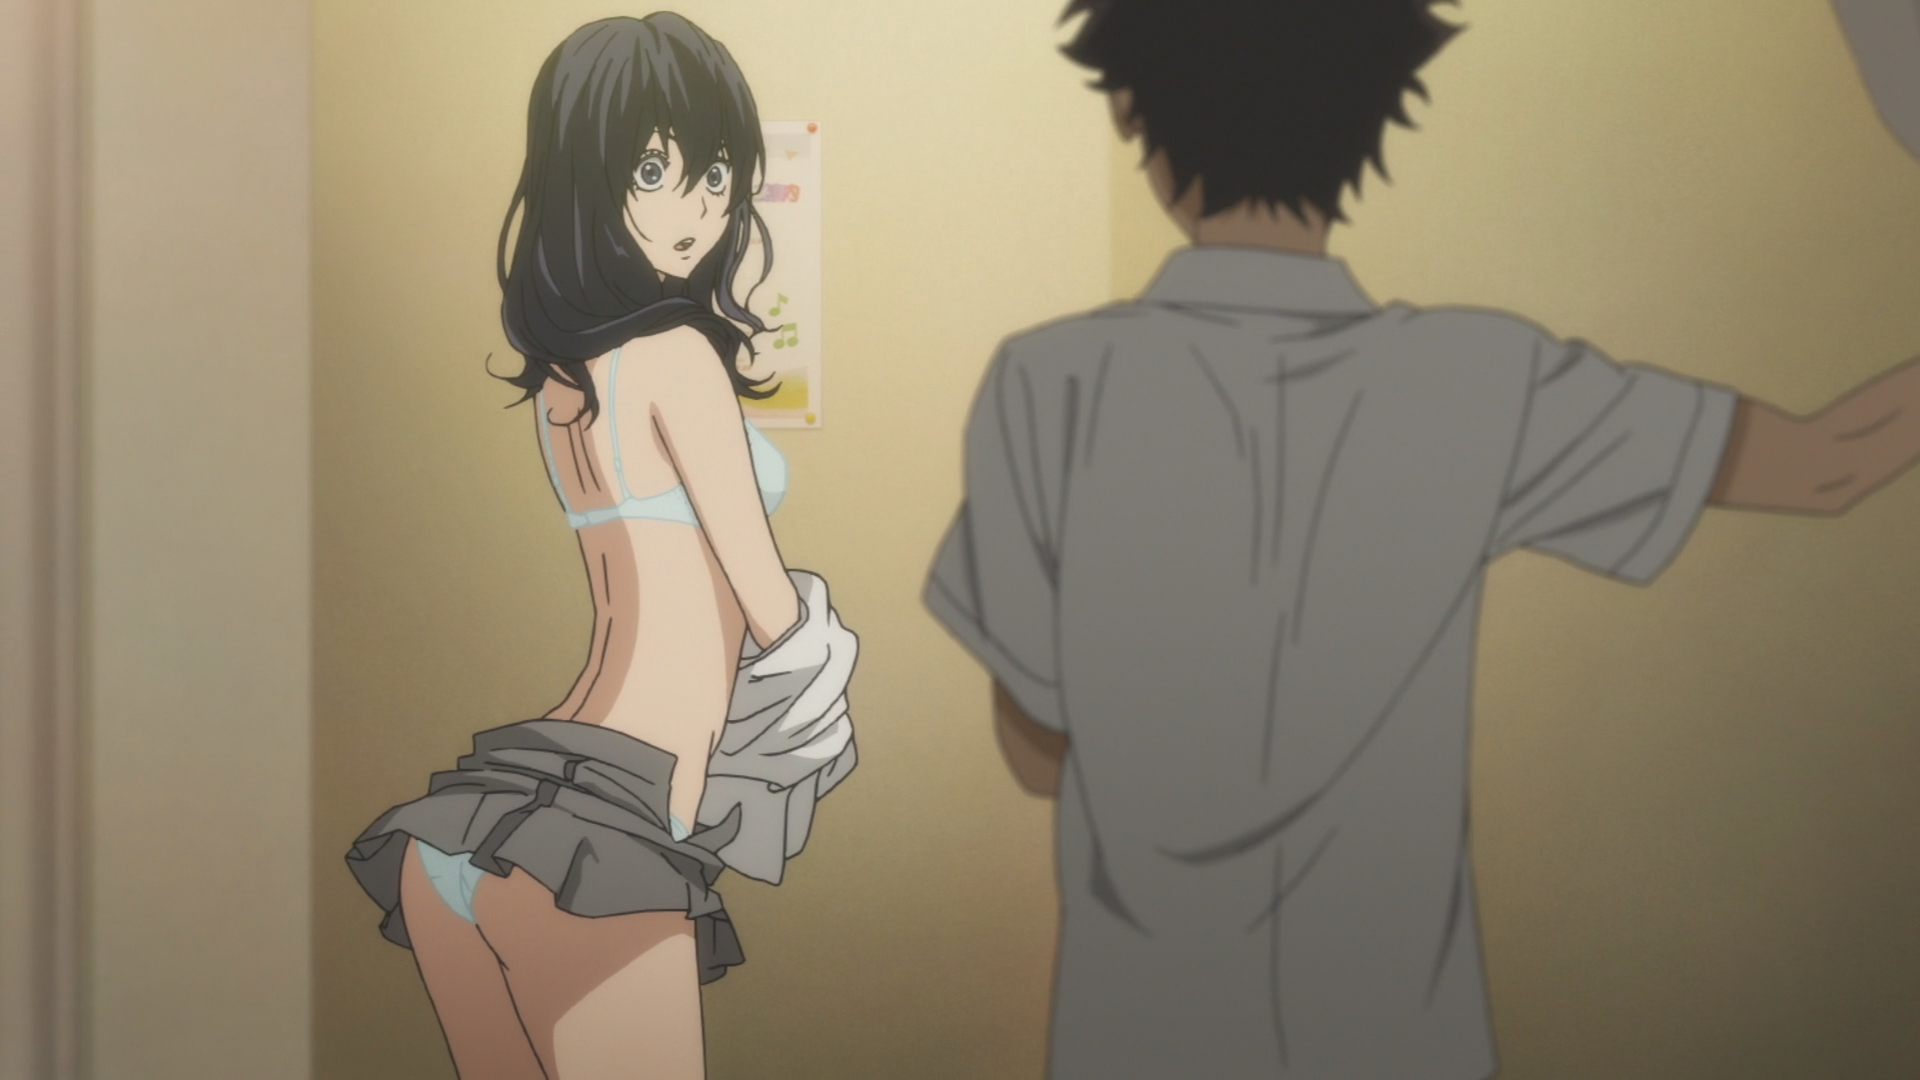 the camera is behind a young man's back as he looks at a girl changing. She is halfway through taking her shirt off, and her underwear is visible under her skirt